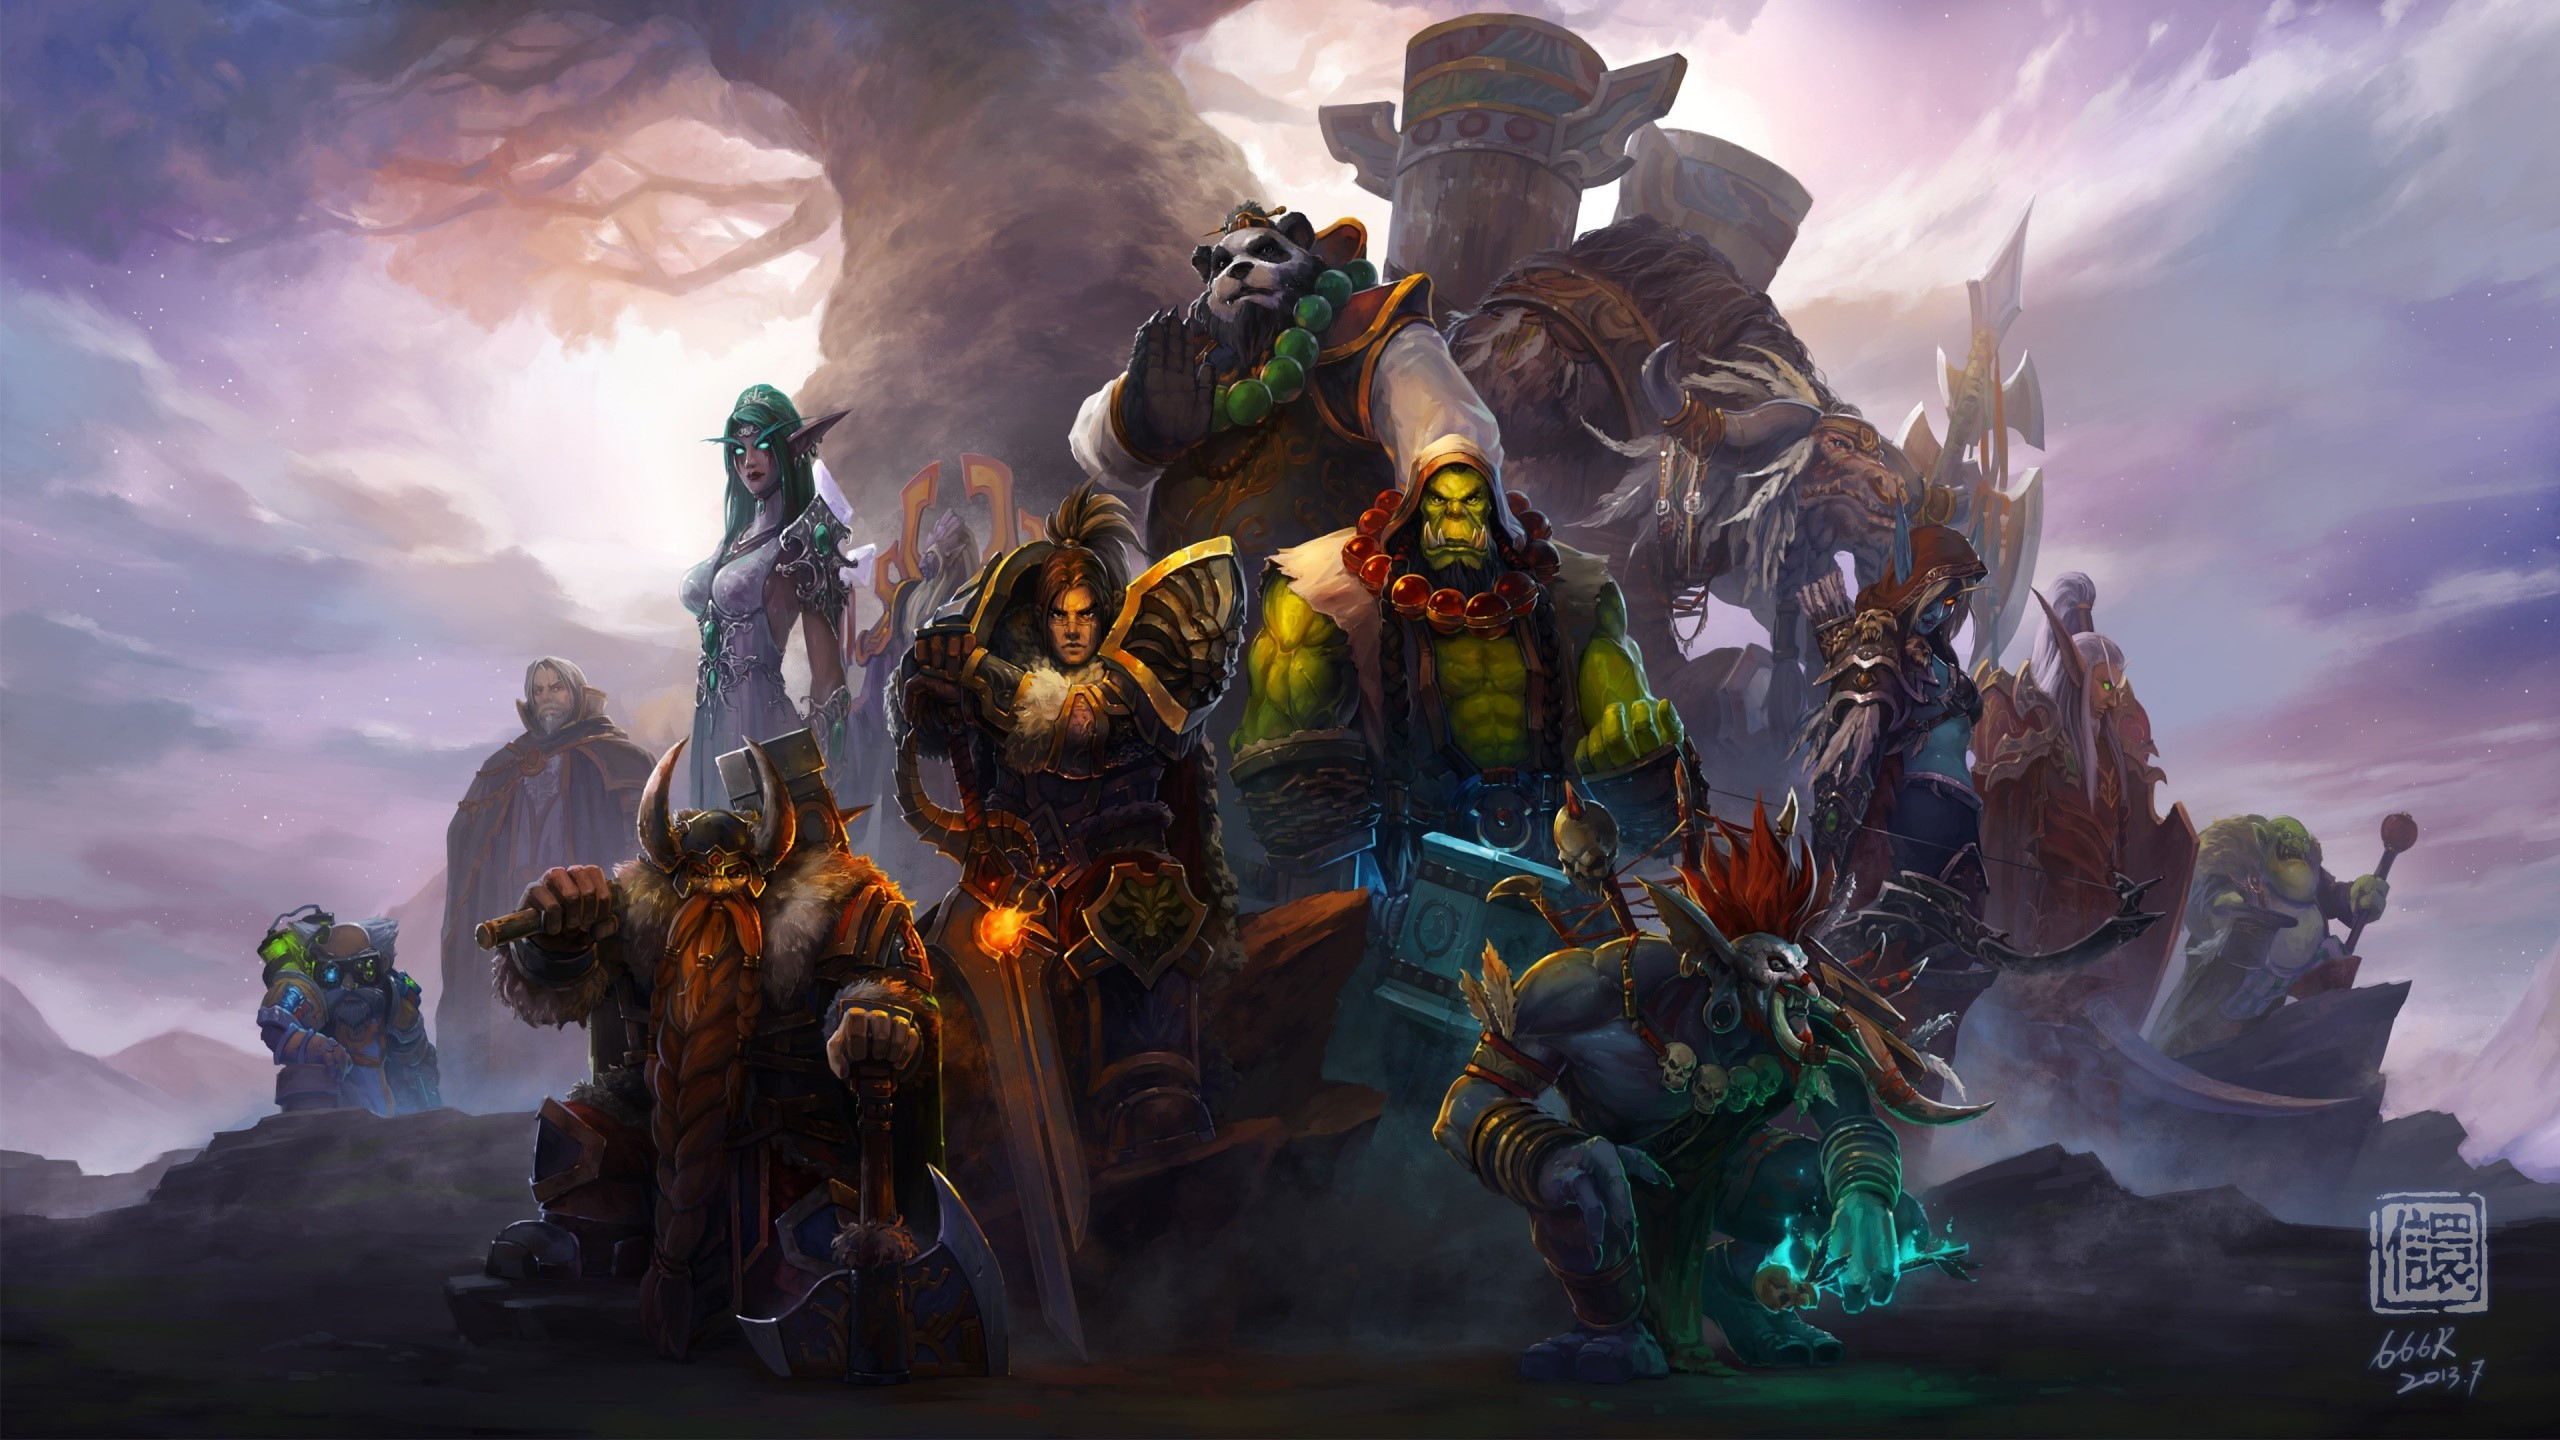 Fondos de pantalla Personajes de World of warcraft